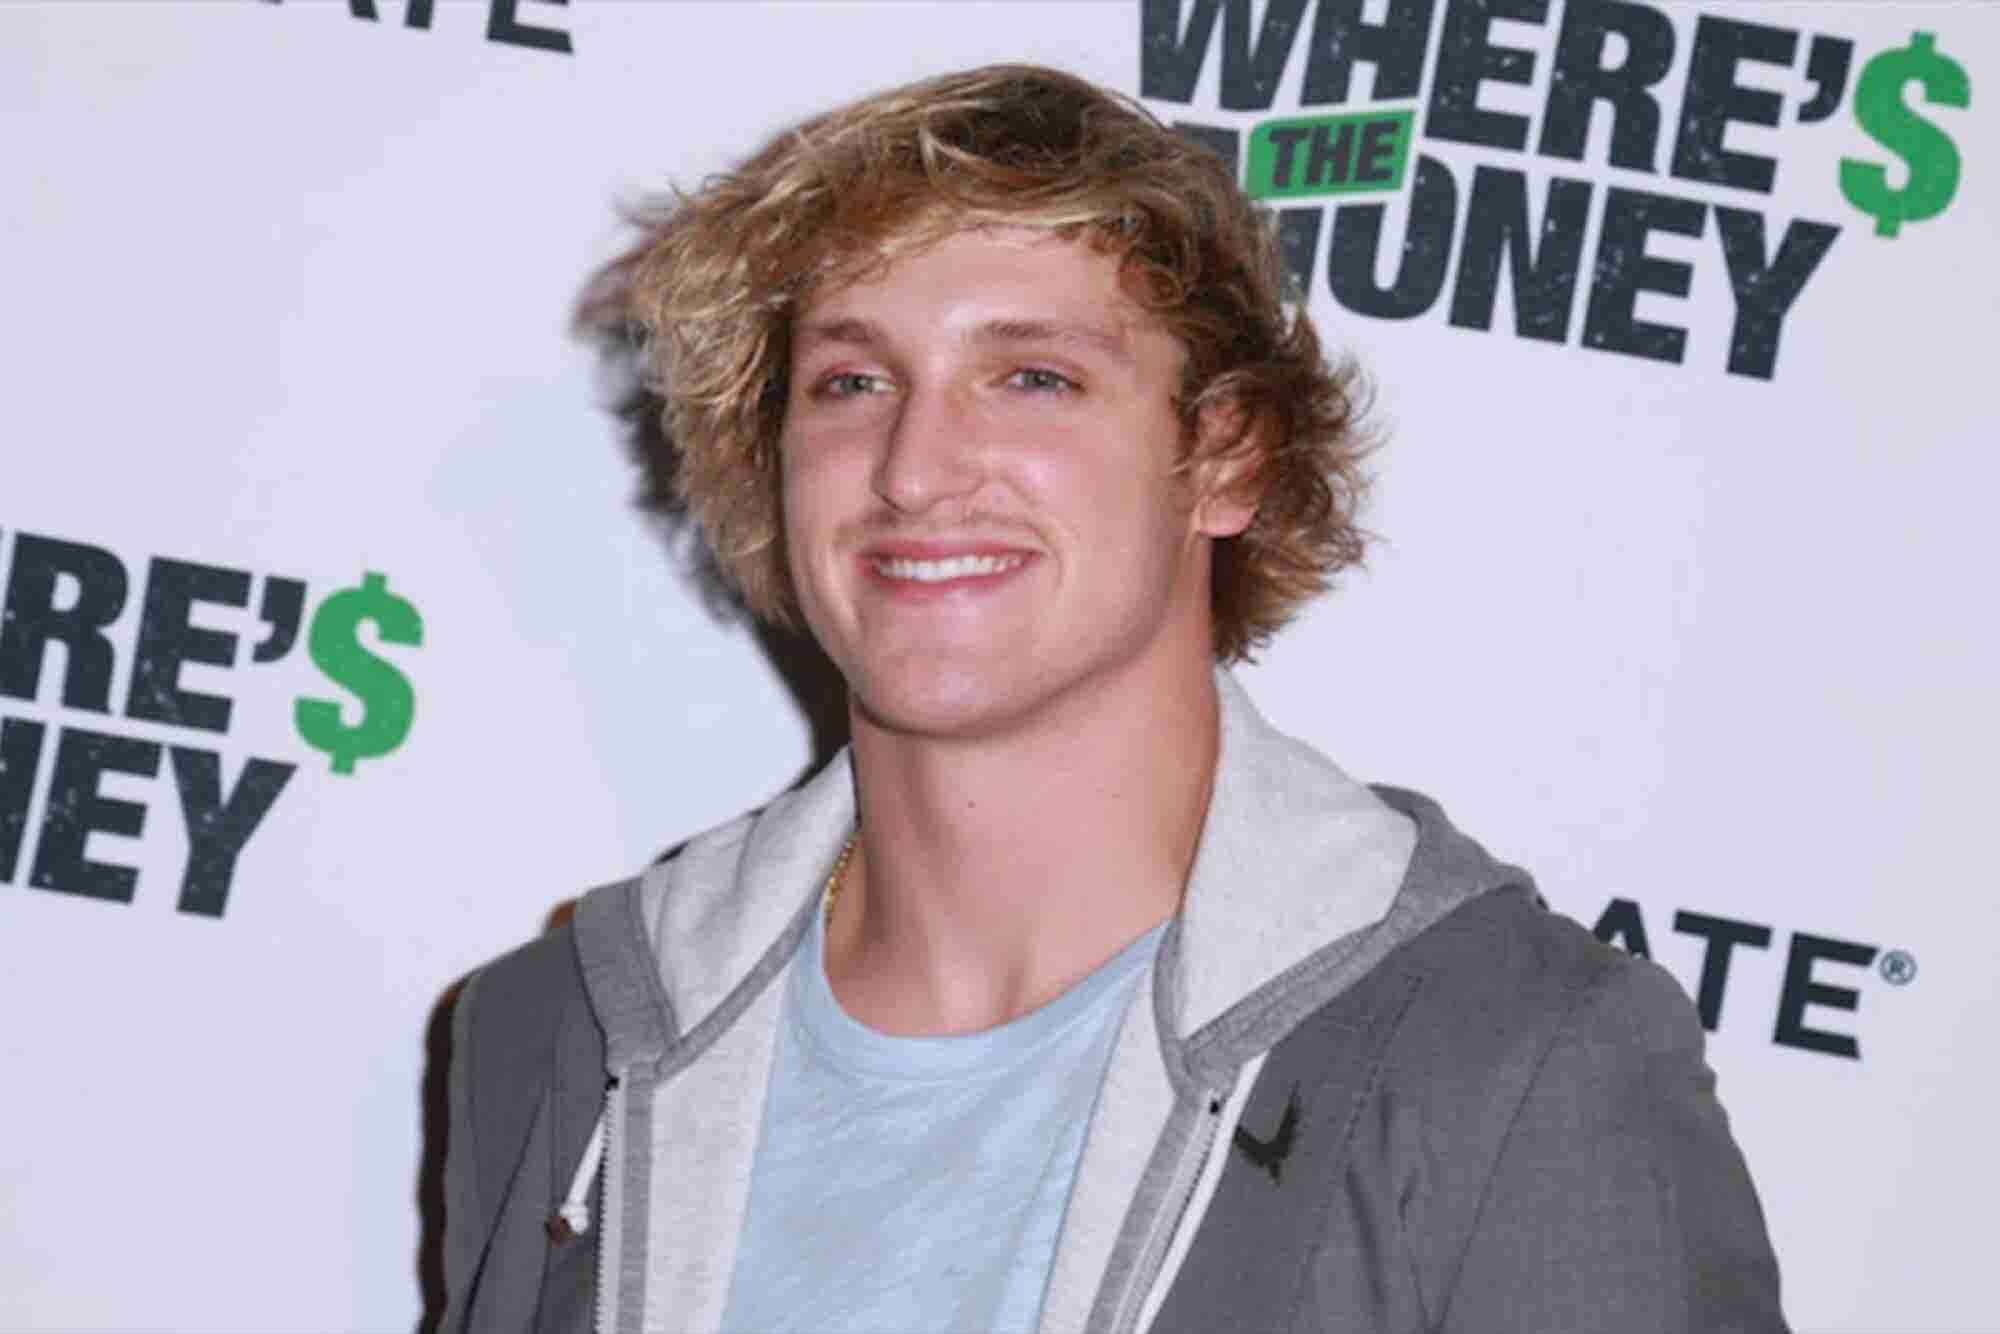 Youtube Temporarily Cuts Off Logan Paul's Ad Revenue